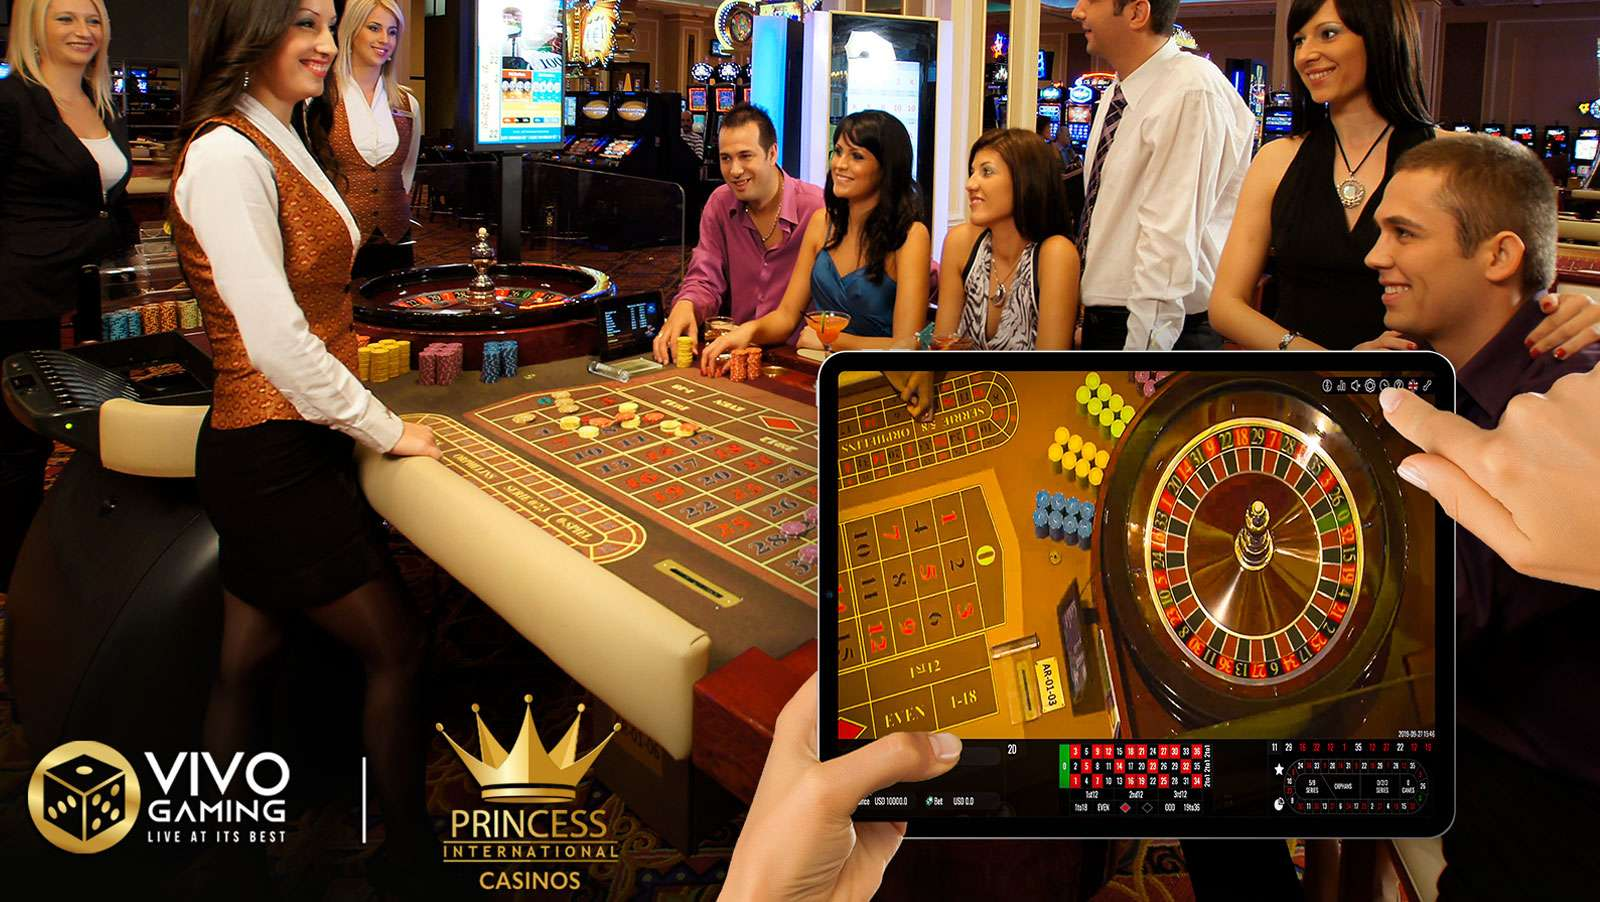 vivo-gaming-and-princess-int-casinos-ally-to-offer-a-real-land-based-casino-experience